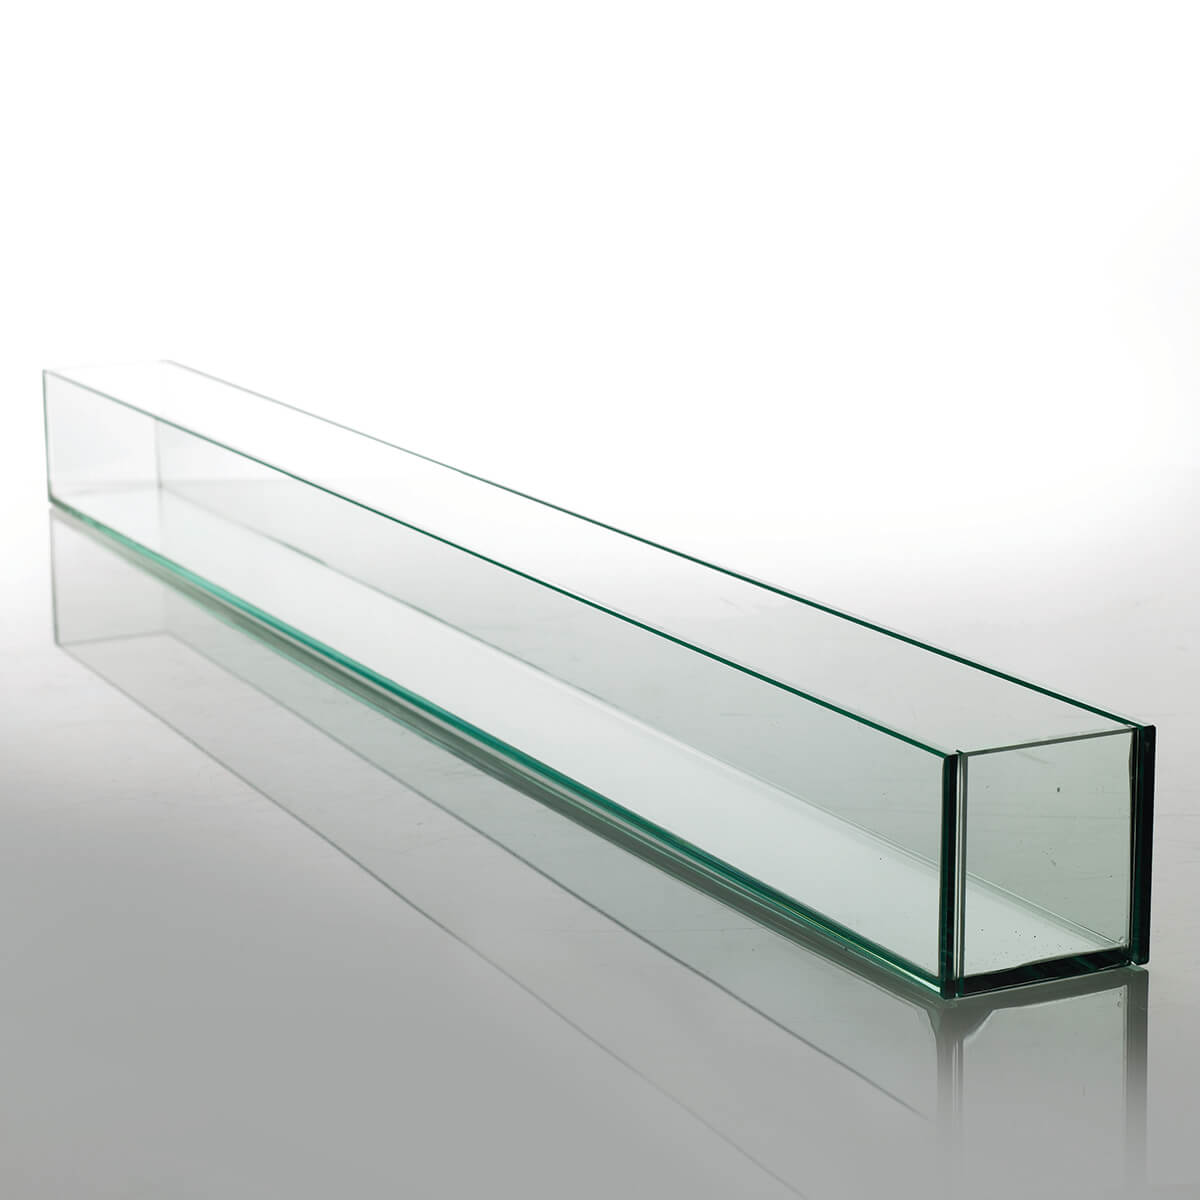 Large 47in Long Thick Glass Display Candleholder Planter